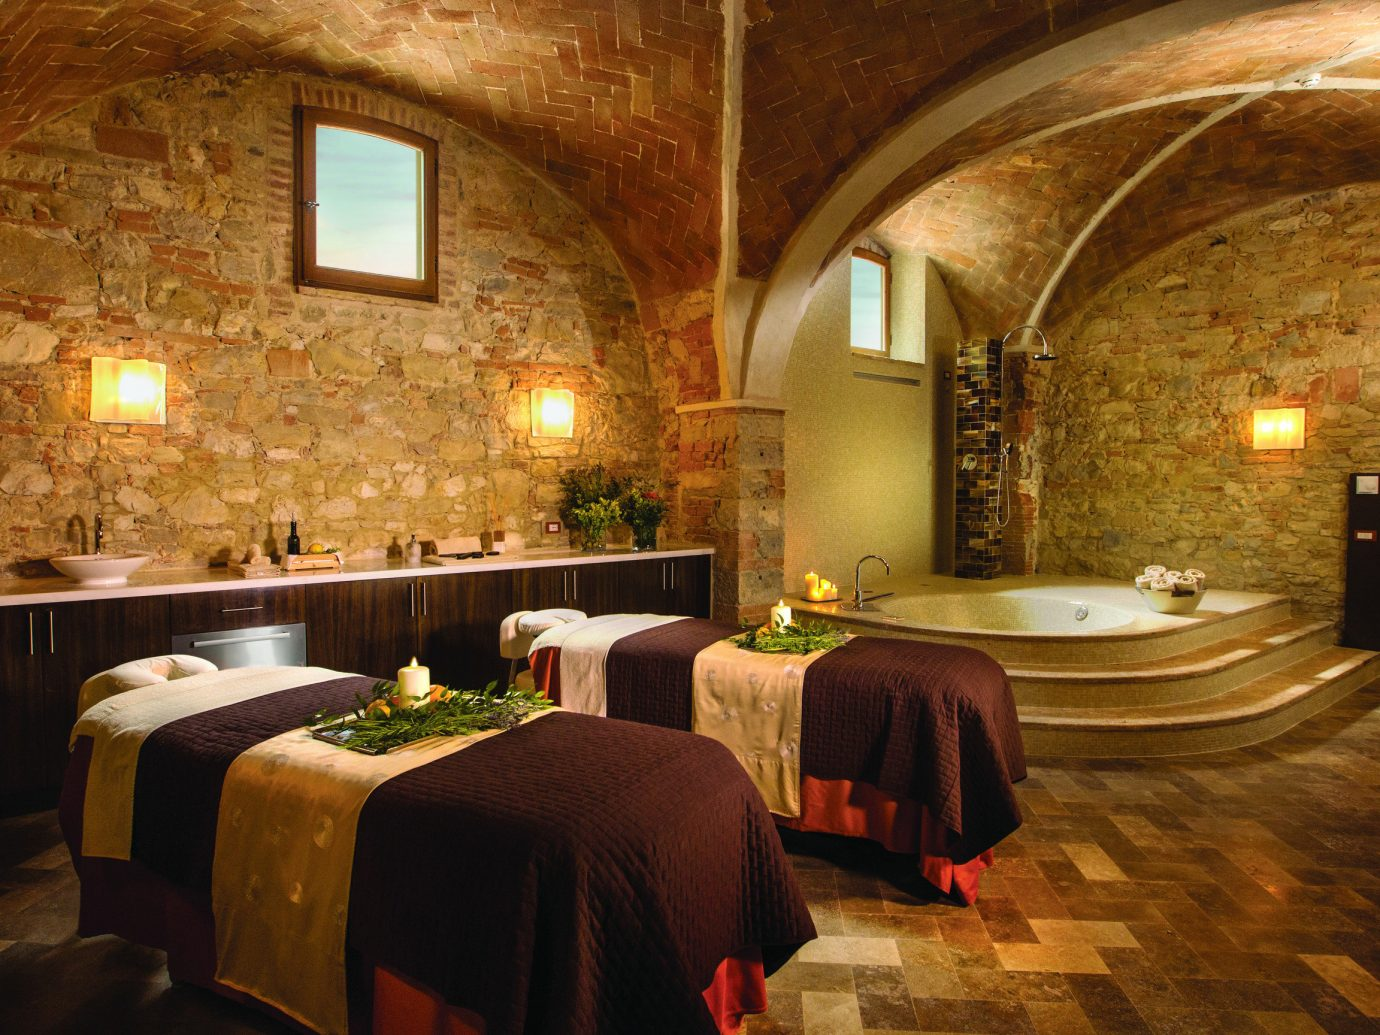 Health + Wellness Hotels Spa Retreats indoor floor property room estate interior design hacienda mansion Suite stone